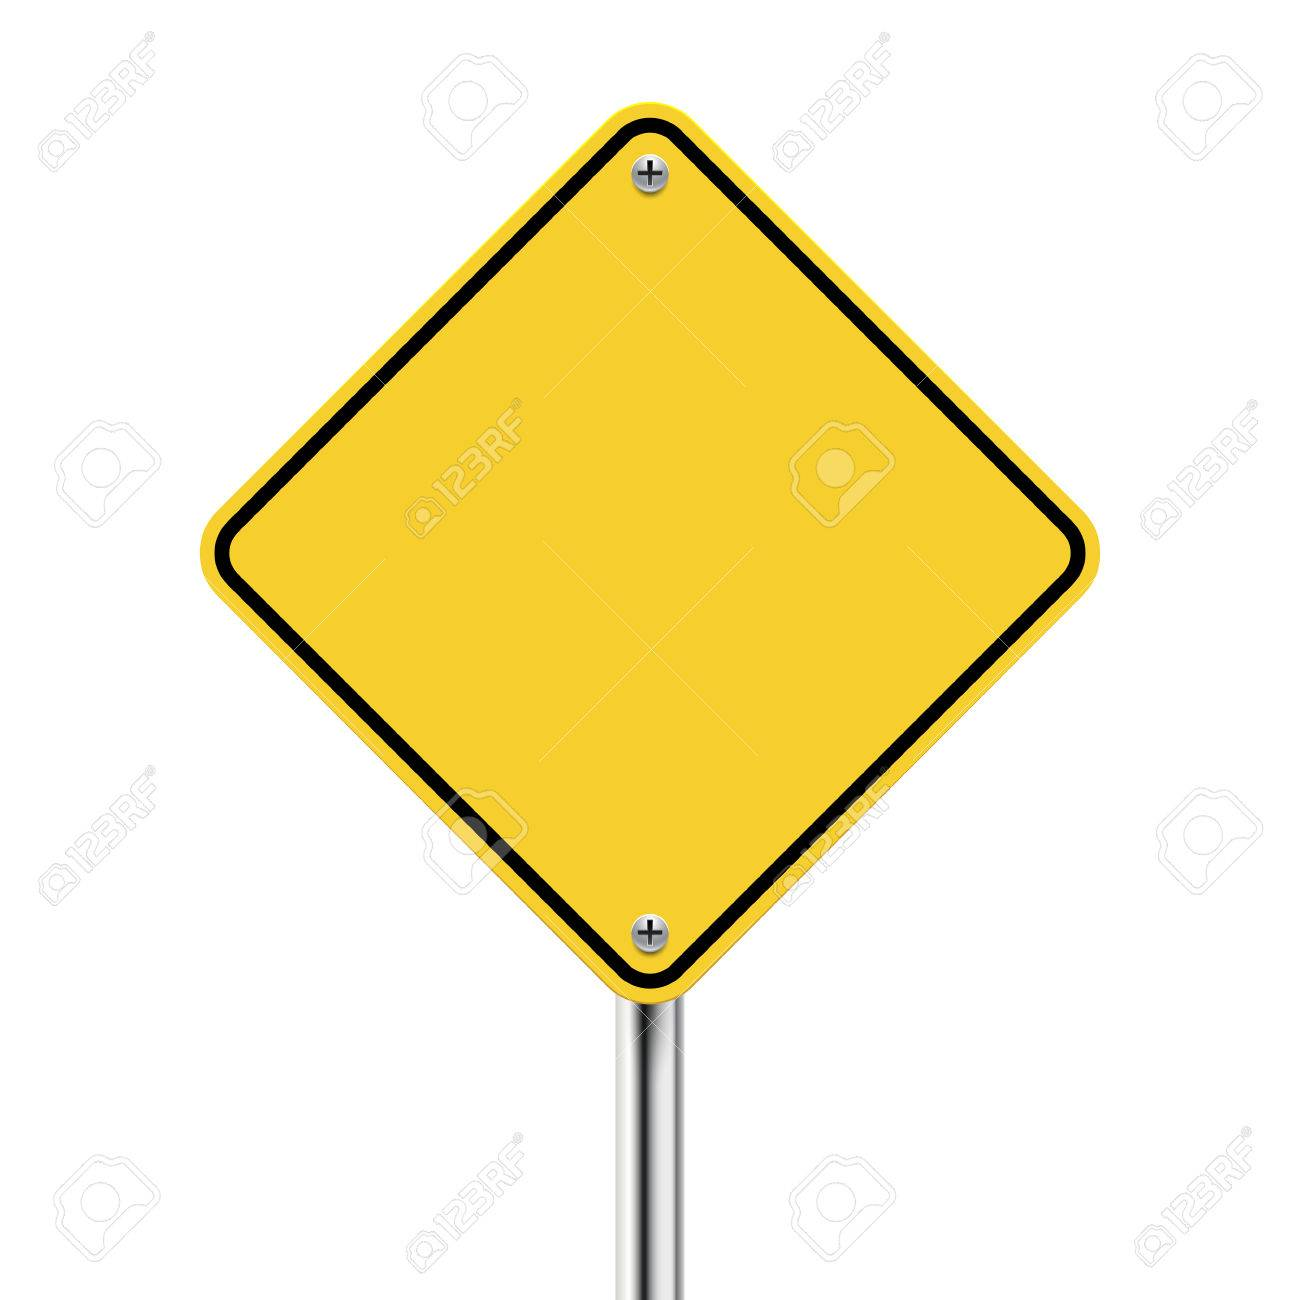 road sign vector  3d Blank Yellow Road Sign On White Royalty Free Cliparts, Vectors ...